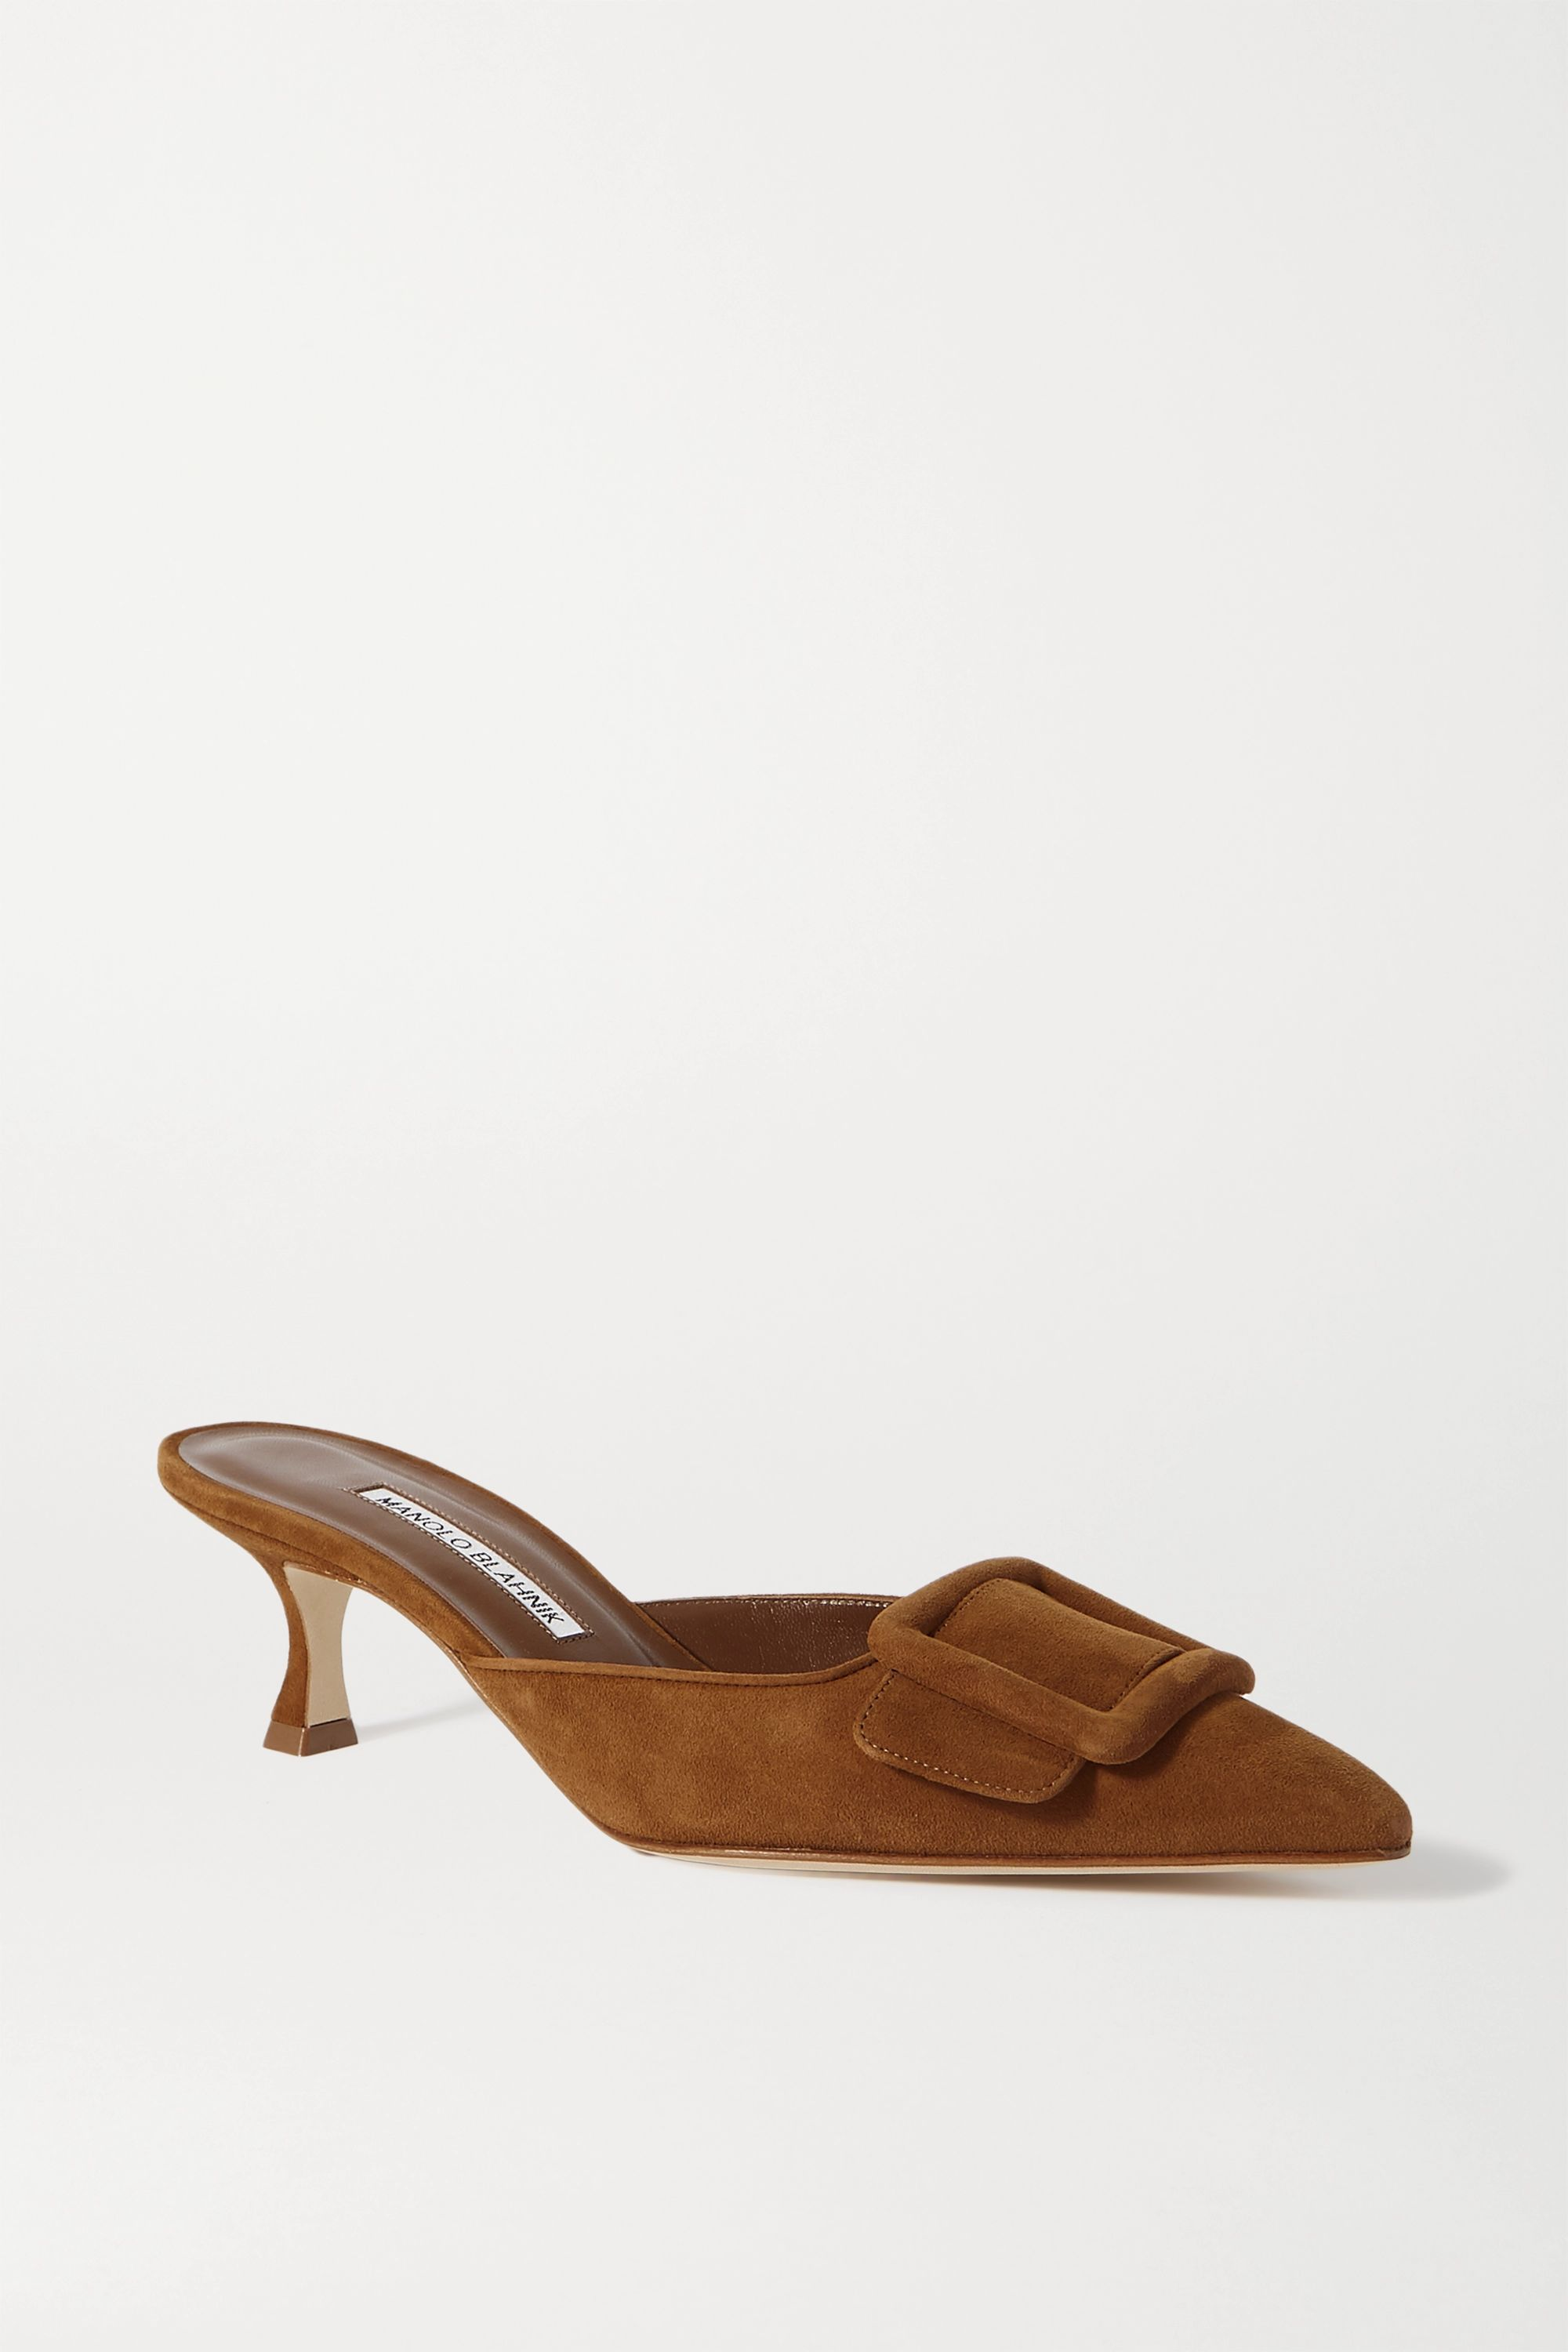 Maysale Buckled Suede Mules